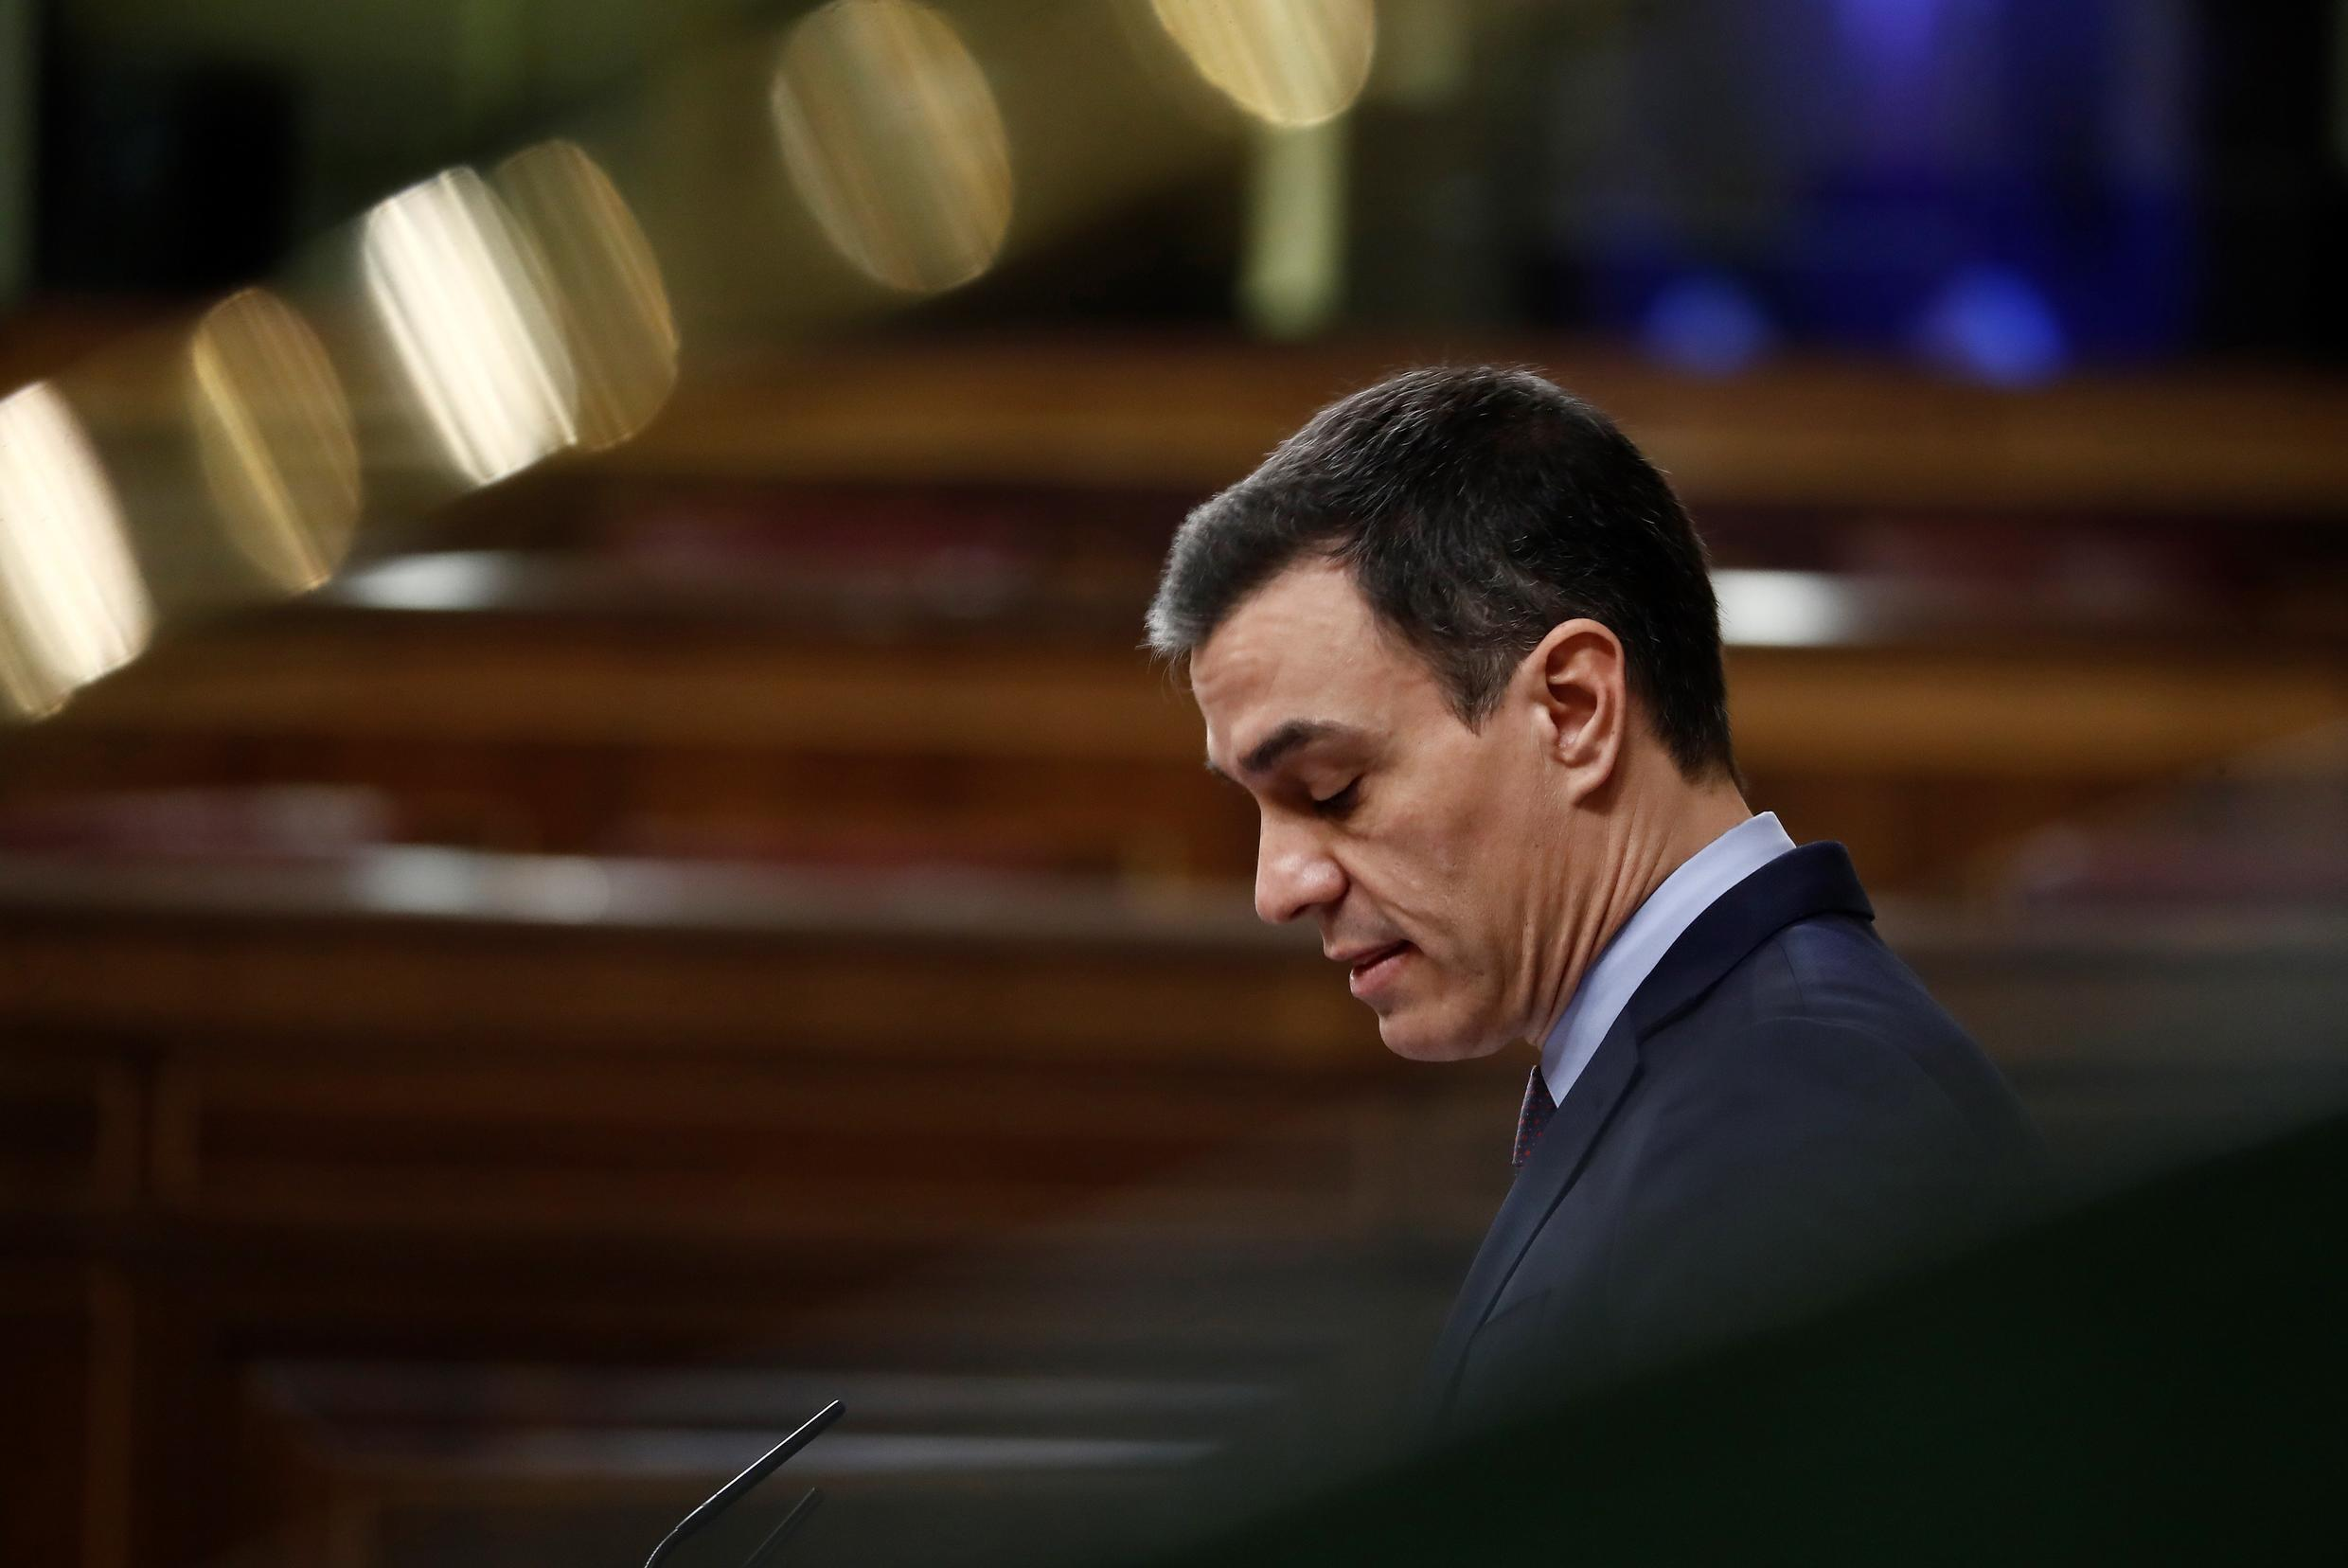 With the coronavirus numbers still spiralling, the government of Prime Minister Pedro Sanchez (pictured March 18, 2020) sought parliamentary approval to extend the state of emergency